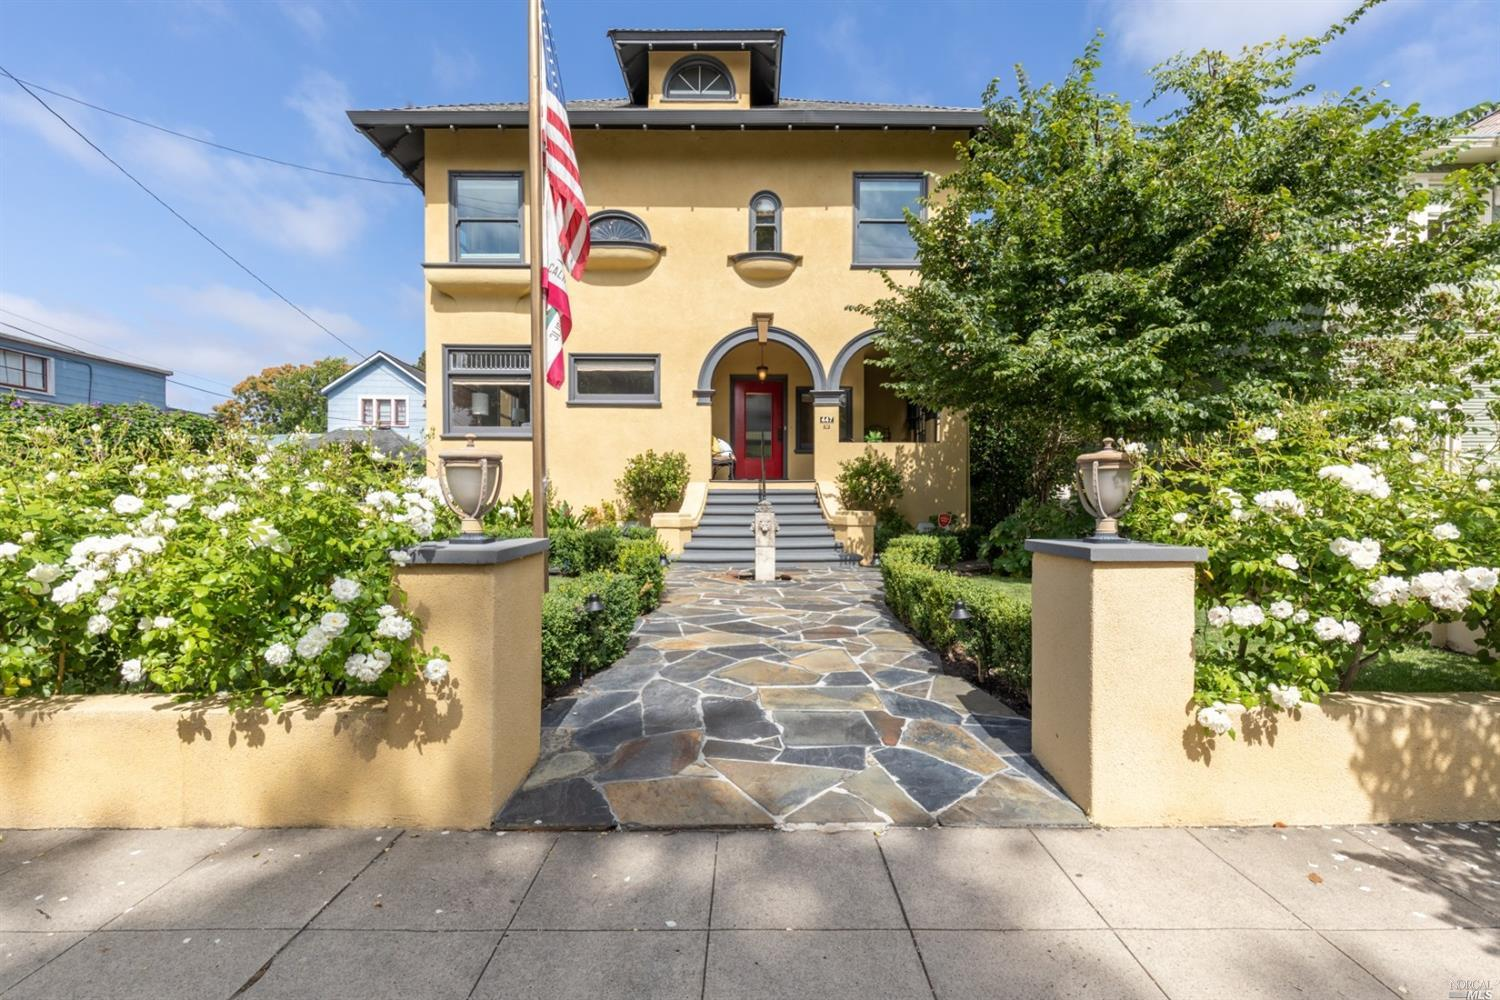 Glorious Italianate home designed by Napa's most preeminent architect Luther Turton. Built in 1905,